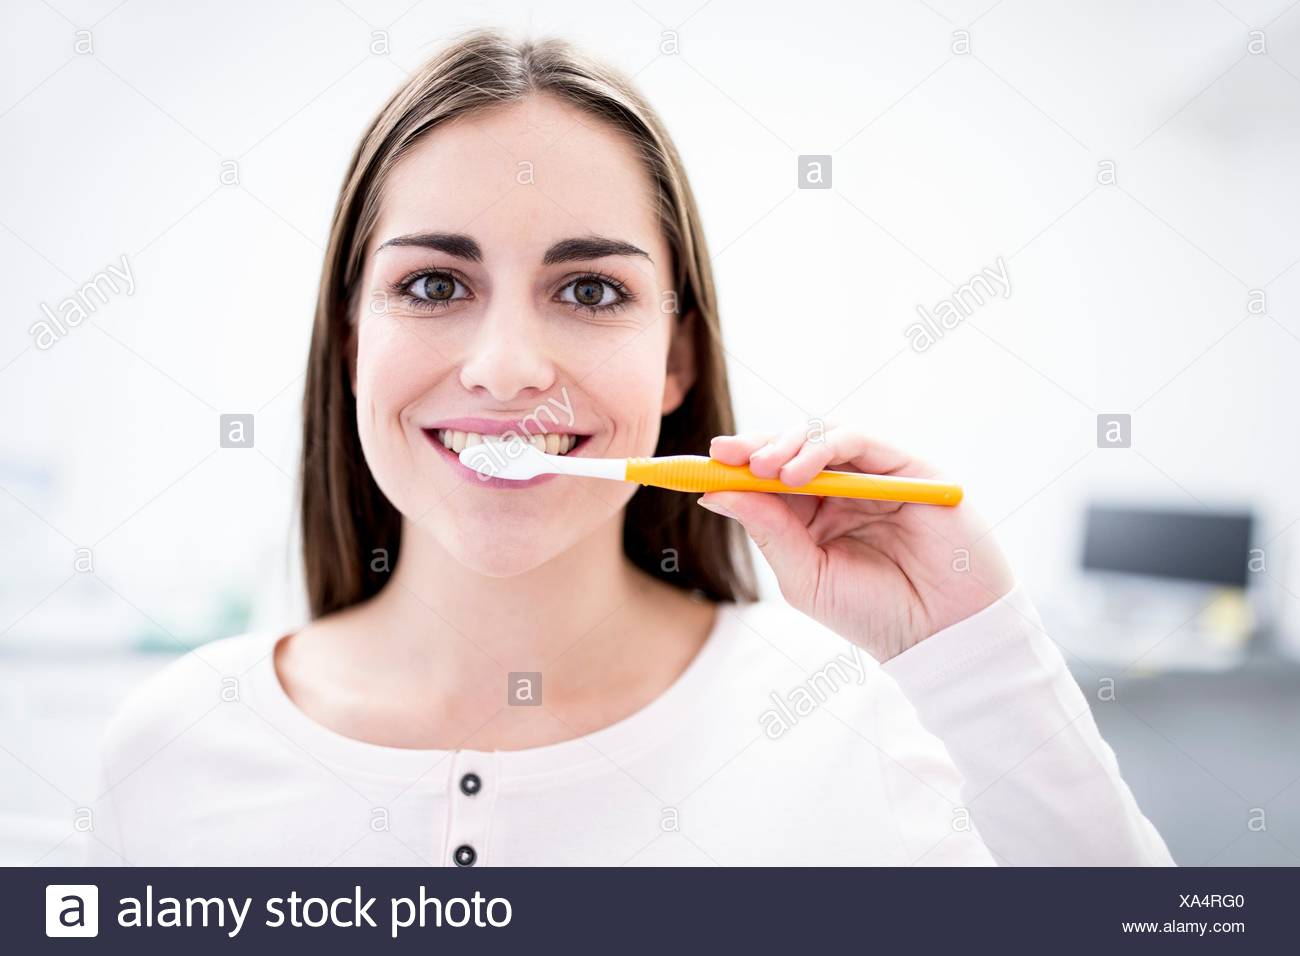 MODEL RELEASED. Young woman brushing teeth, portrait, close-up. - Stock Image